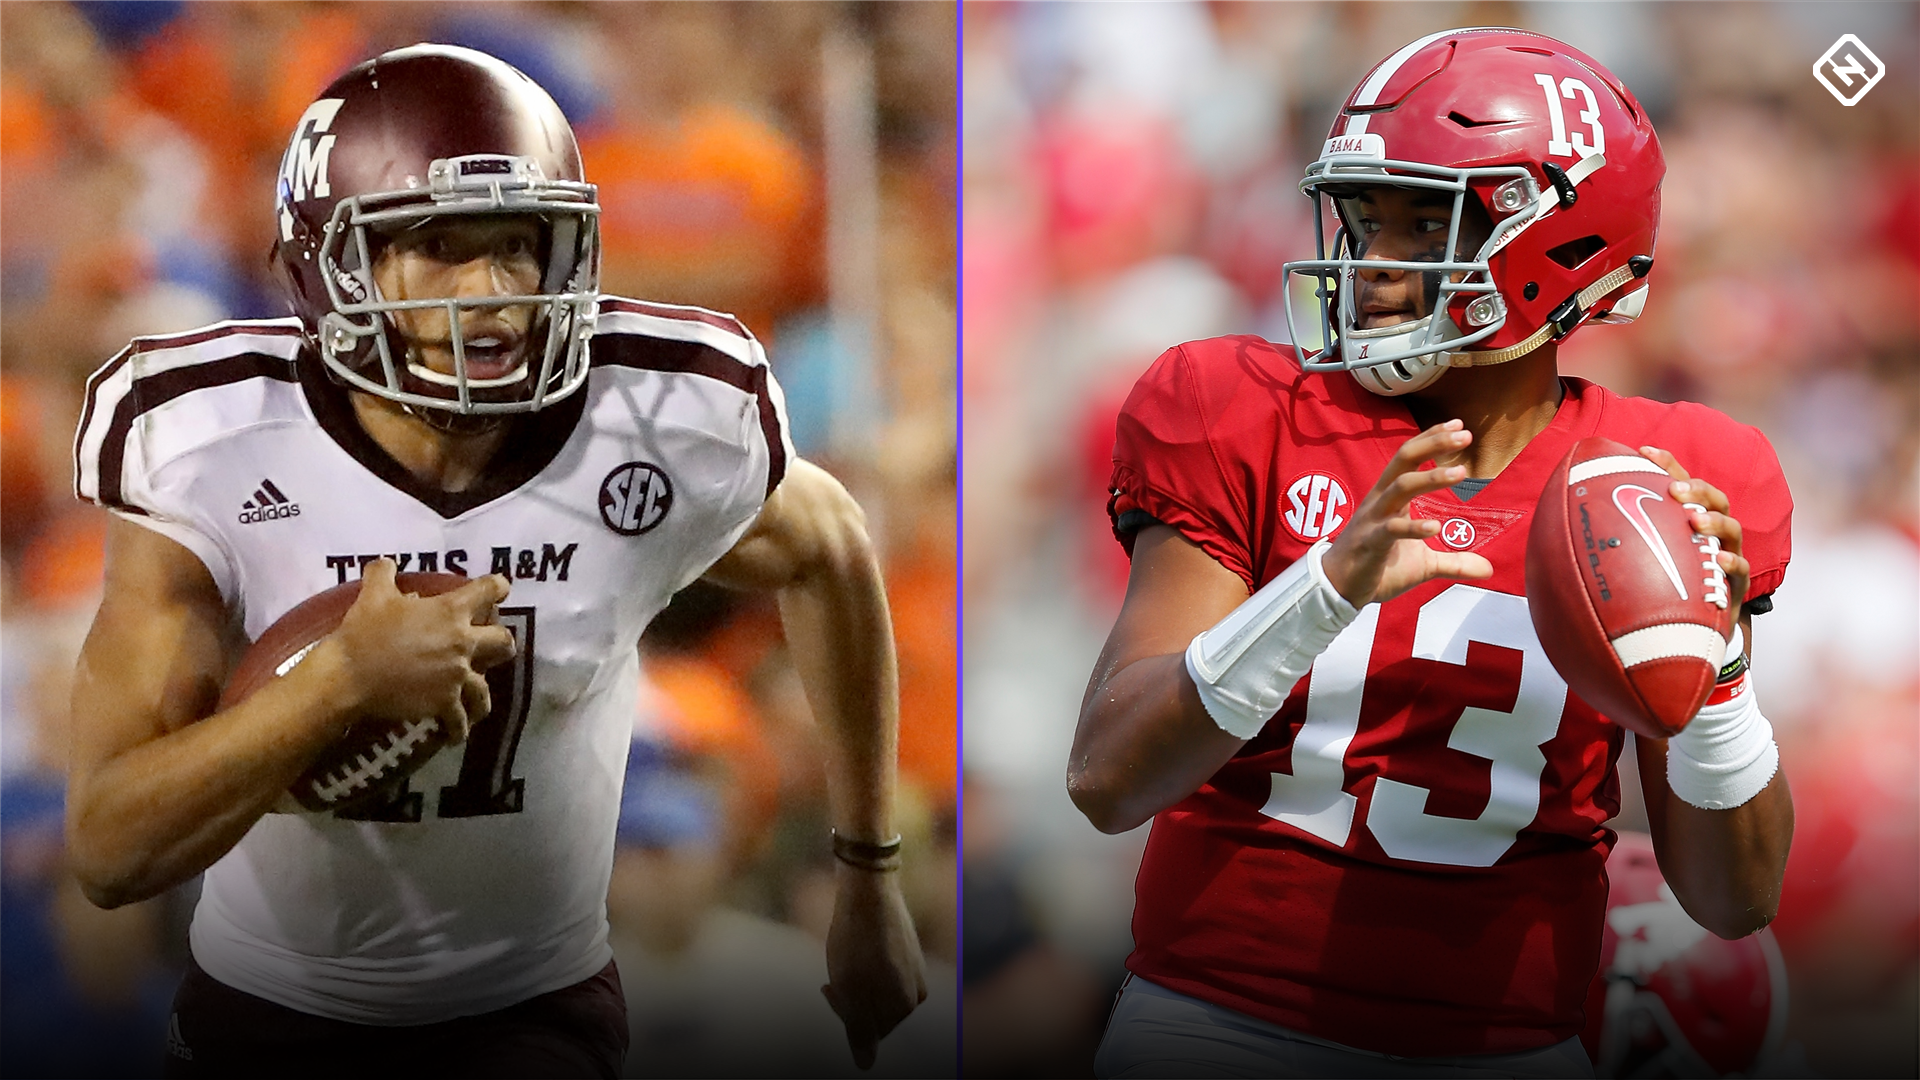 College football schedule: Week 4 TV coverage for top 25 games